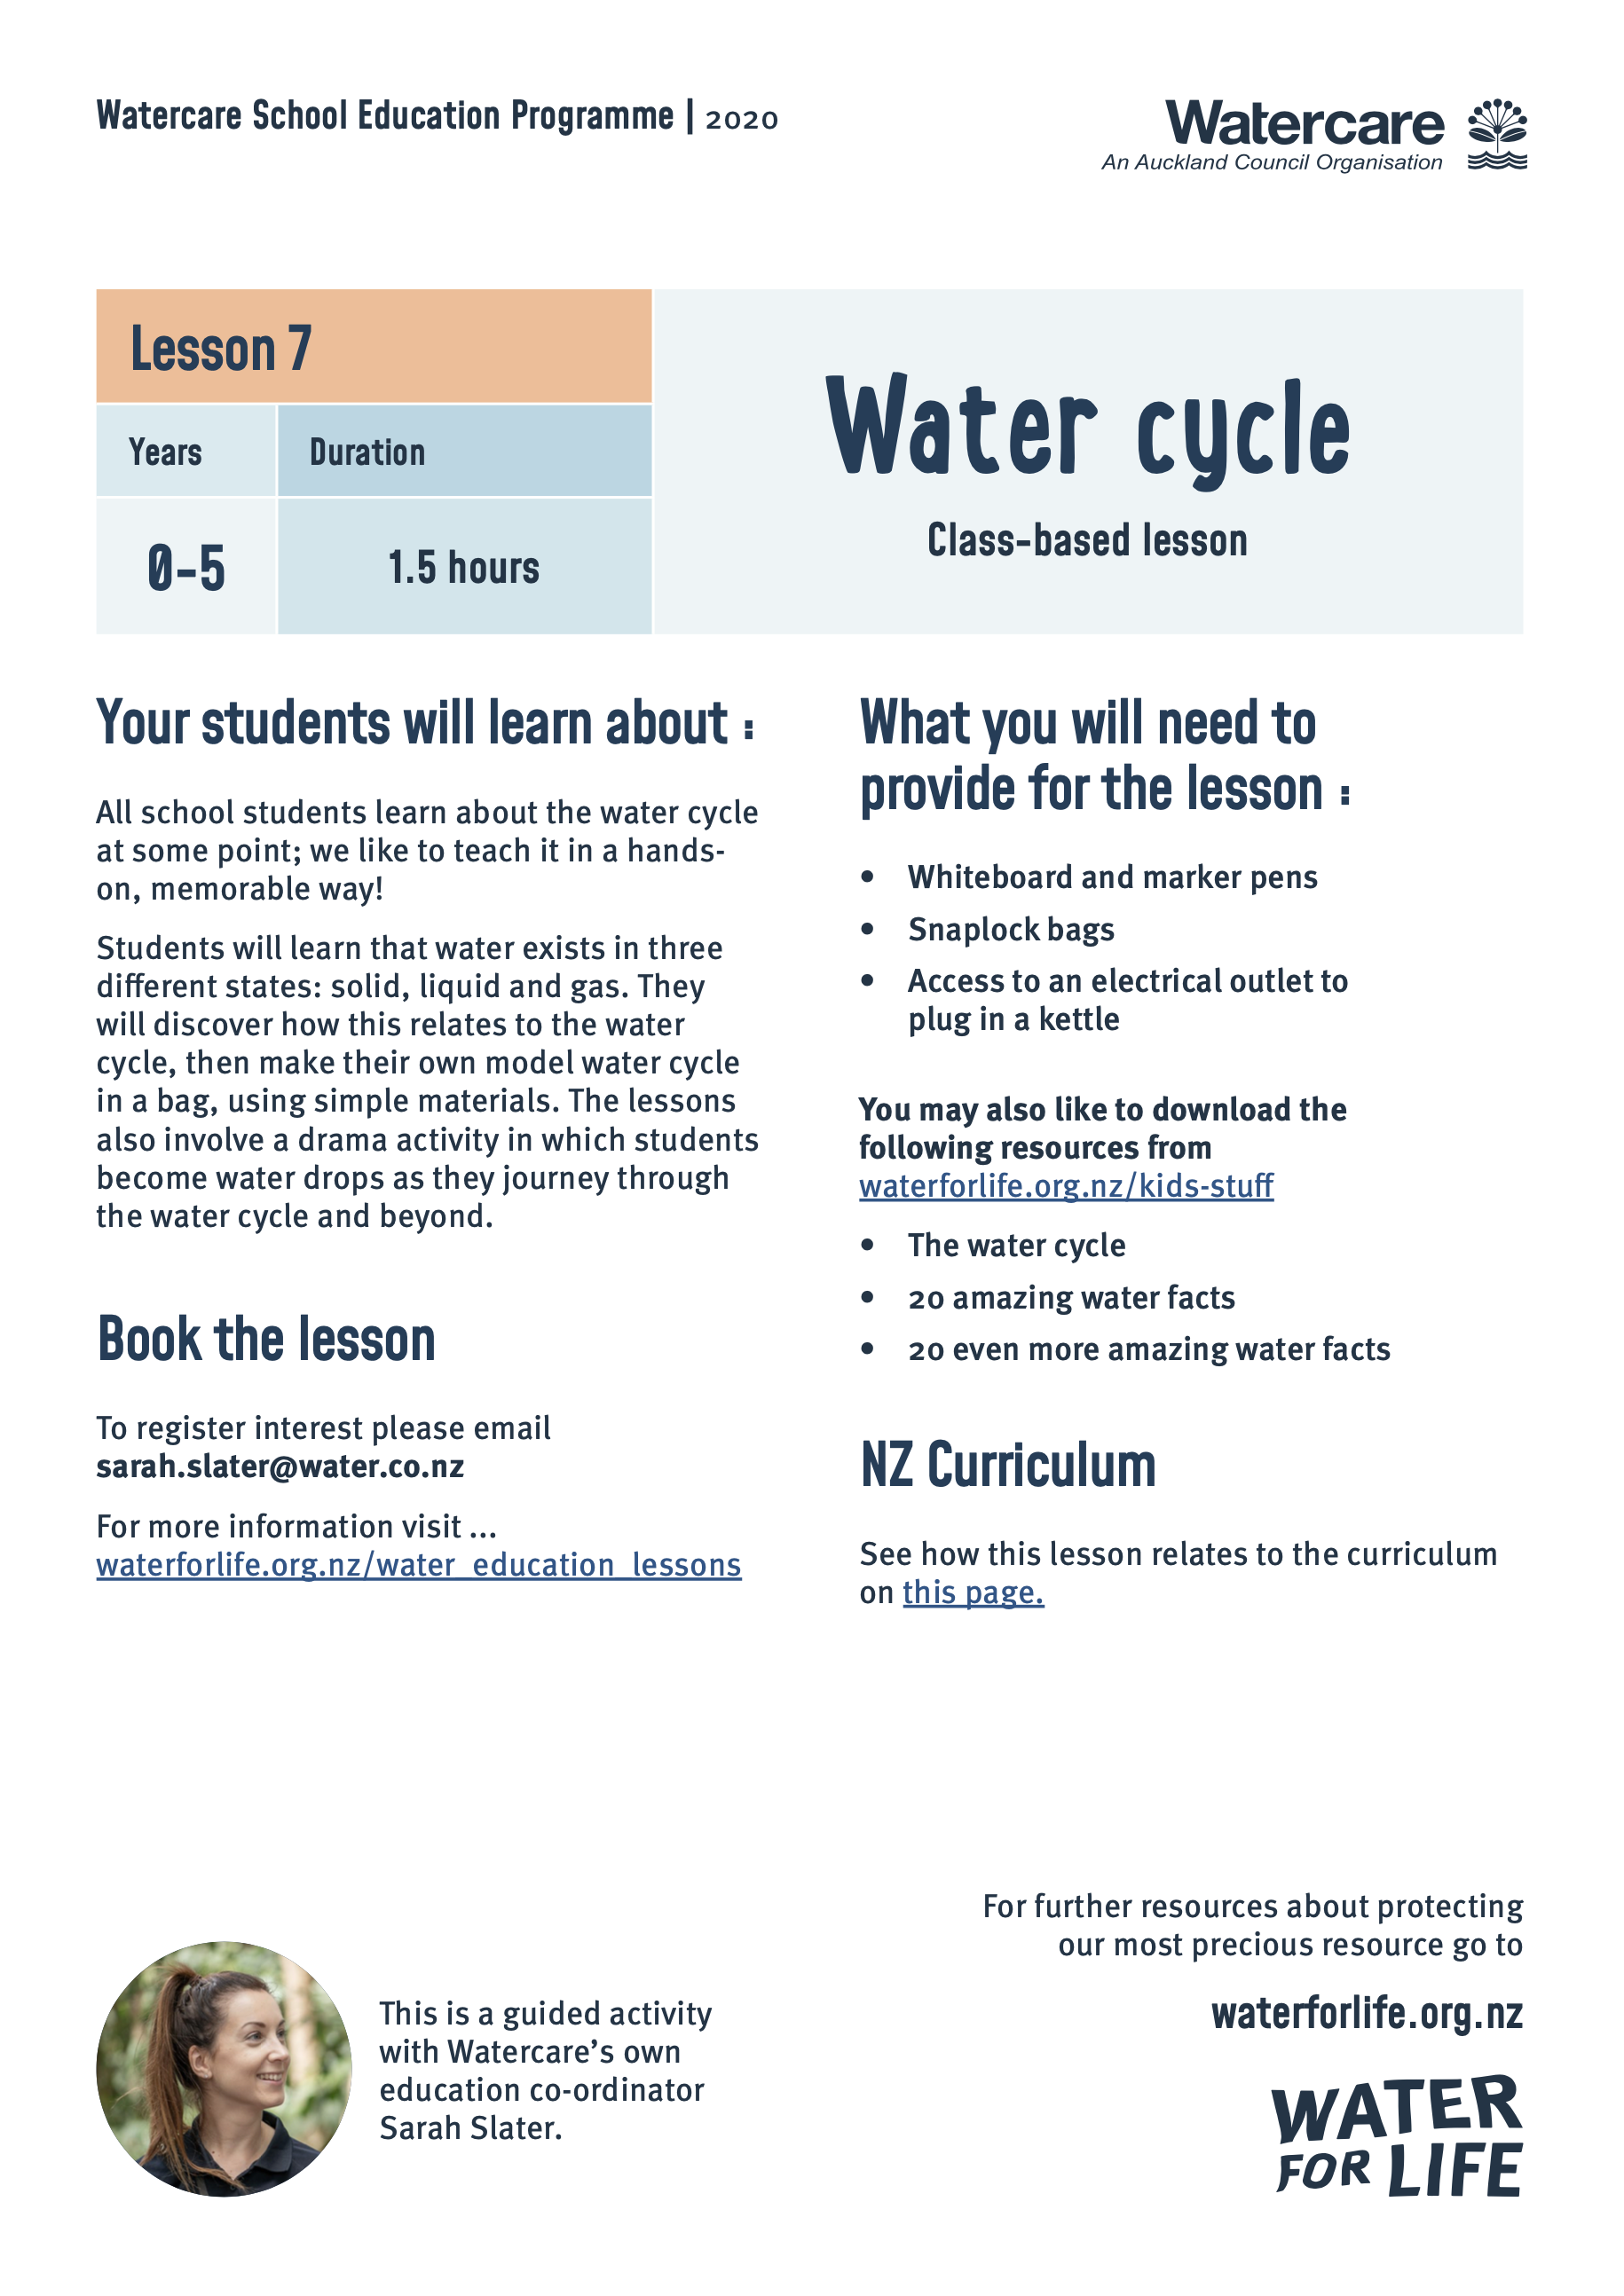 WFL_edu_Lesson7_Watercycle.pdf